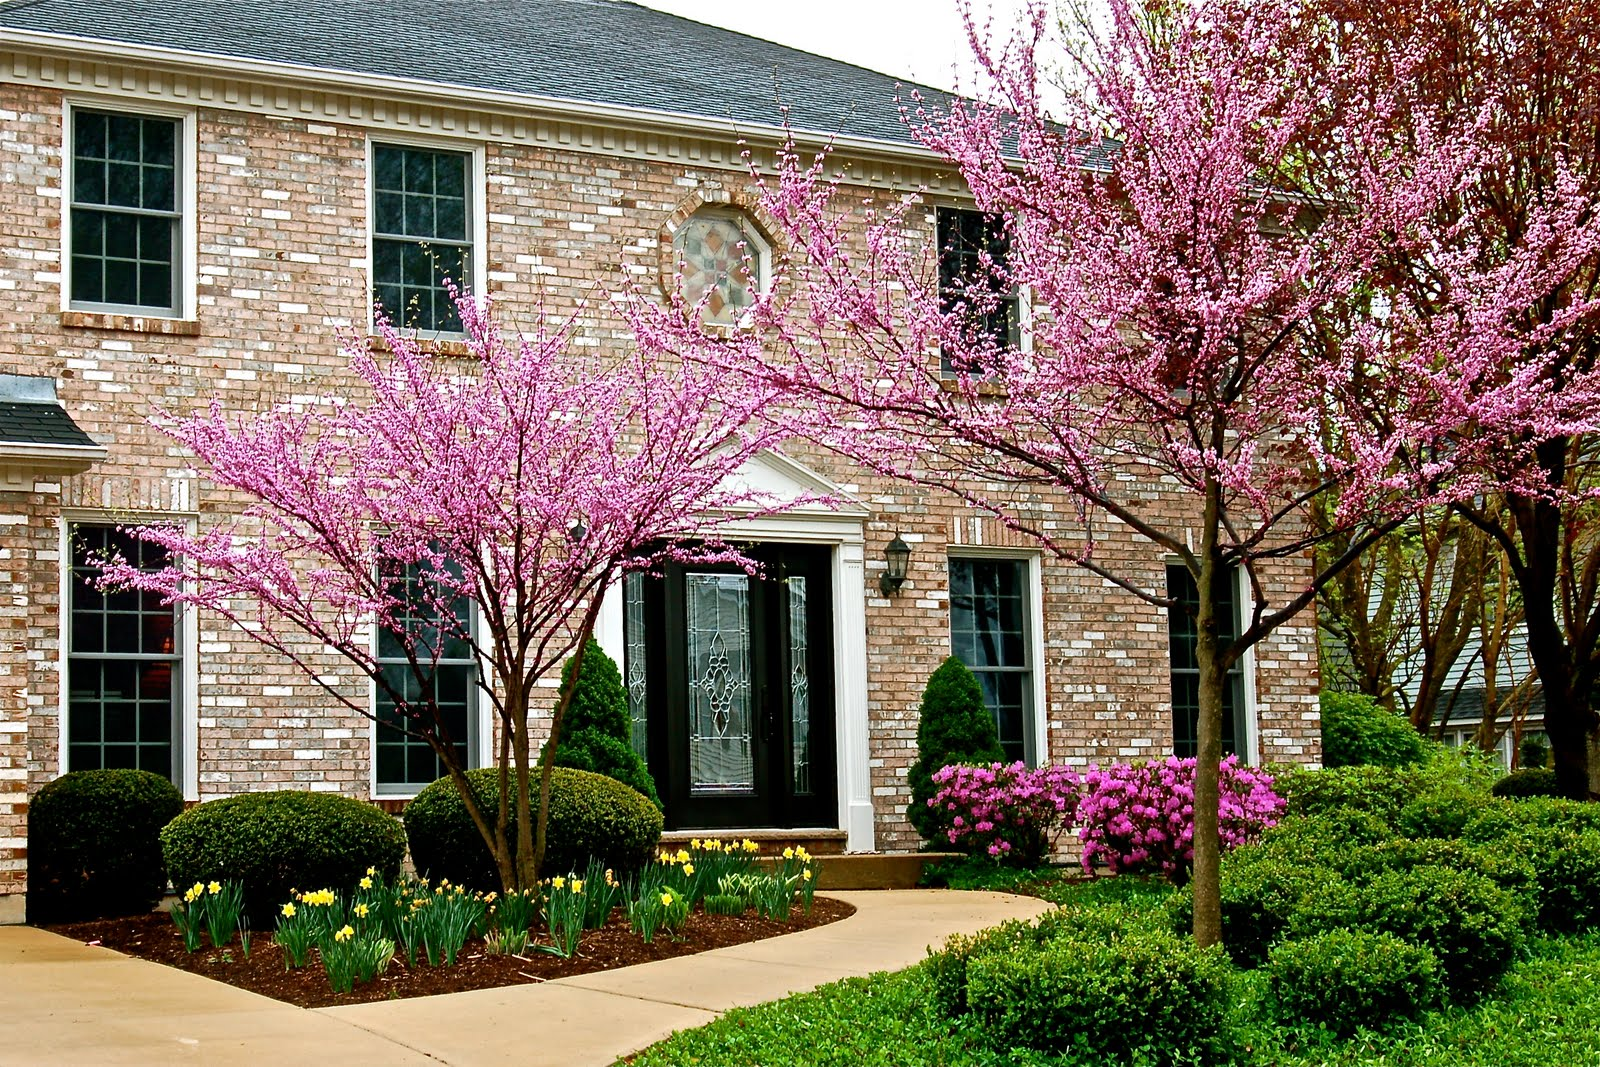 Homeowner Tips For Spring: What Homeowners Should Do After Winter